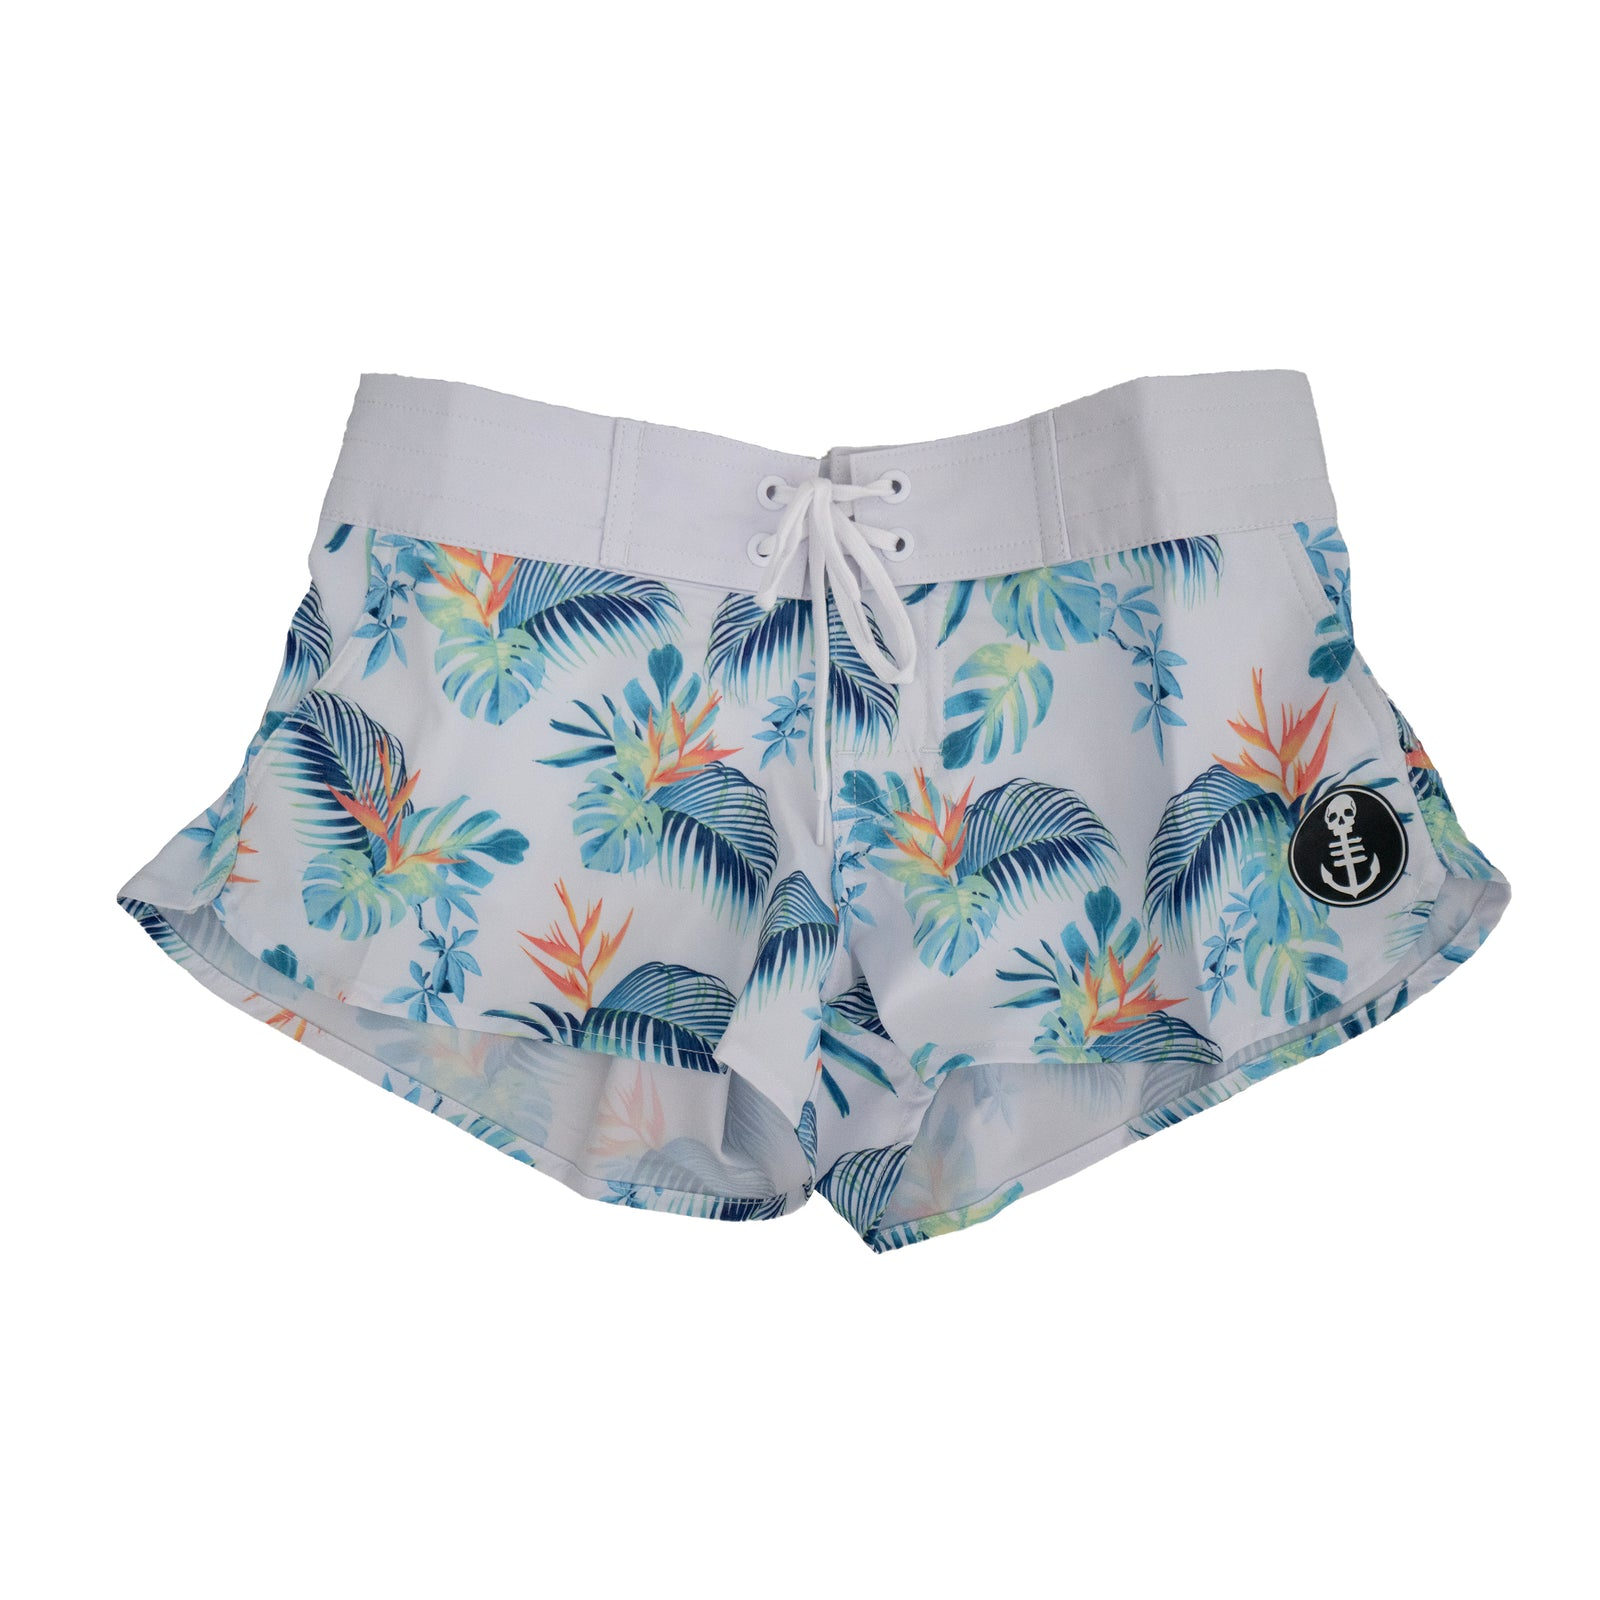 Women's White Floral Drawstring Boardshorts